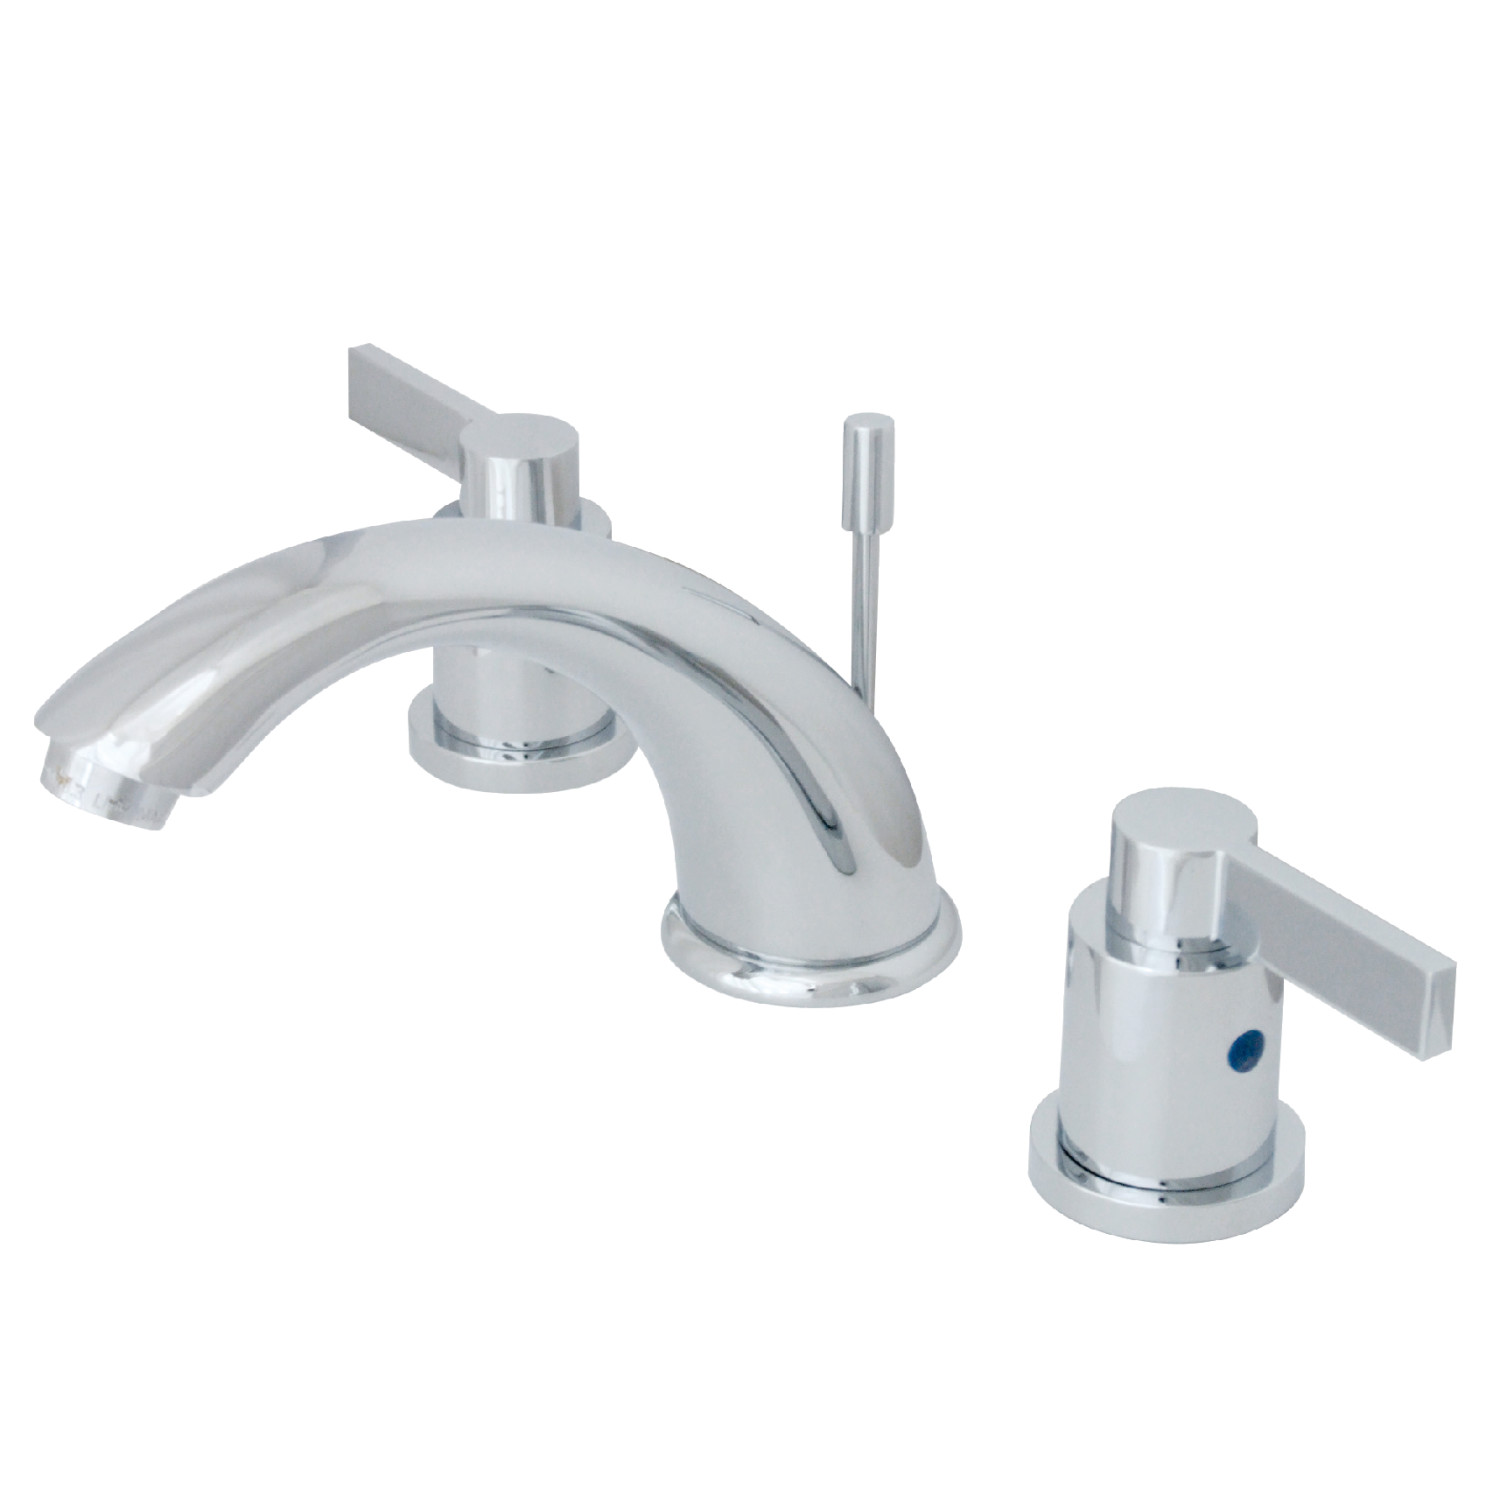 Modern 2-Handle Three-Hole Deck Mounted Widespread Bathroom Faucet with Plastic Pop-Up in Polished Chrome